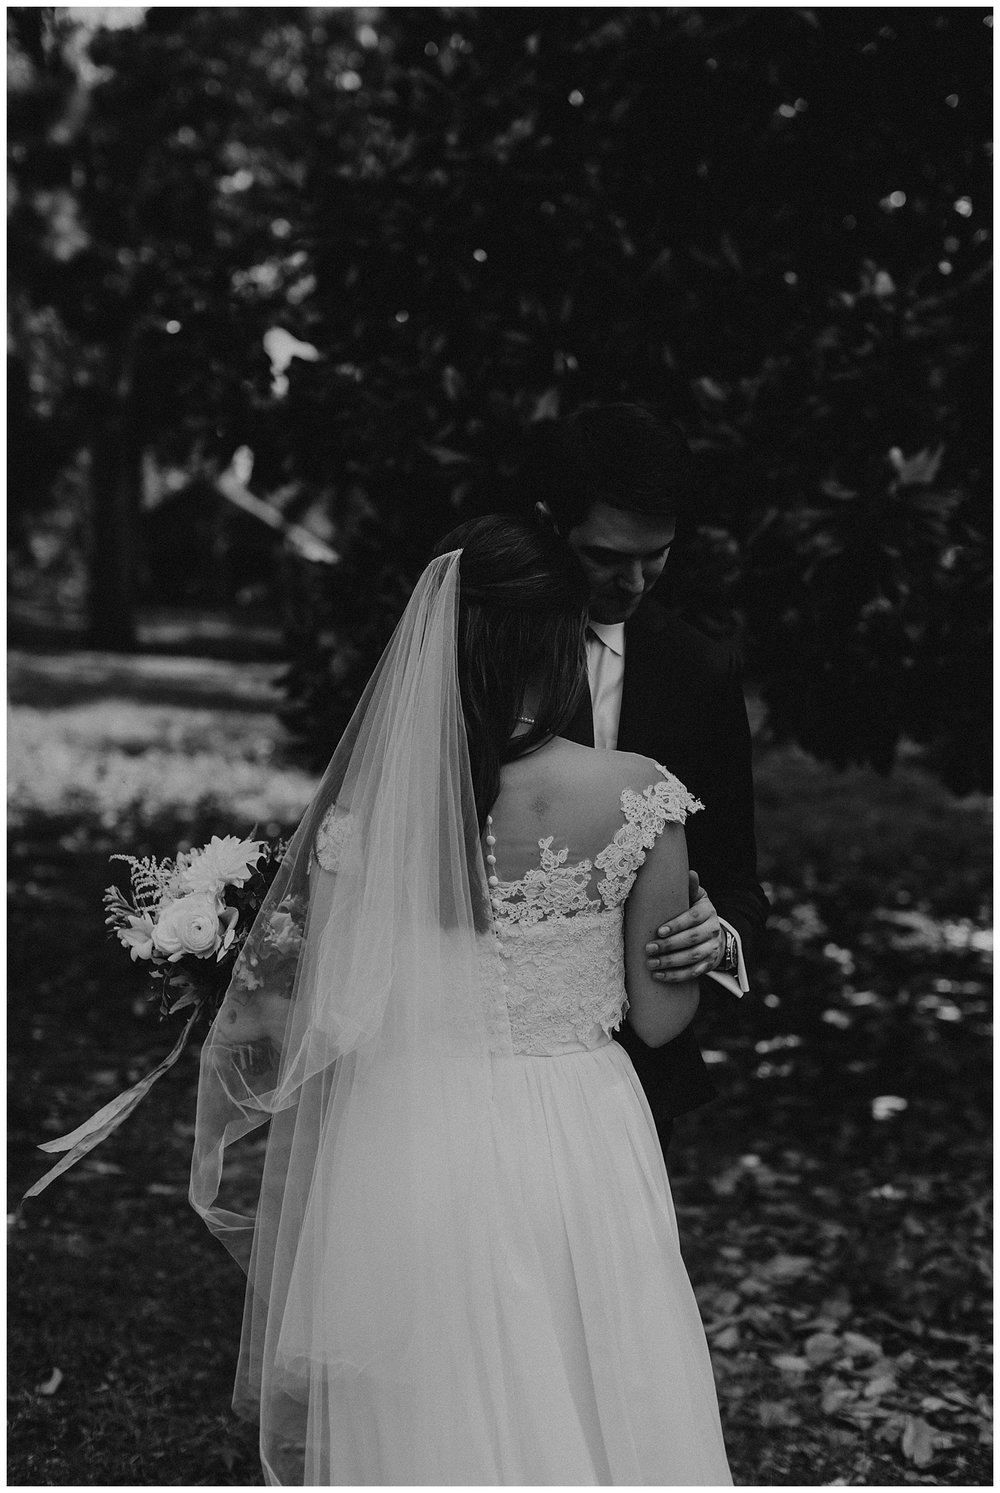 Madalynn Young Photography | Sarah Catherine + Will | Bridge Street Gallery and Loft | Atlanta Wedding Photographer_0184.jpg